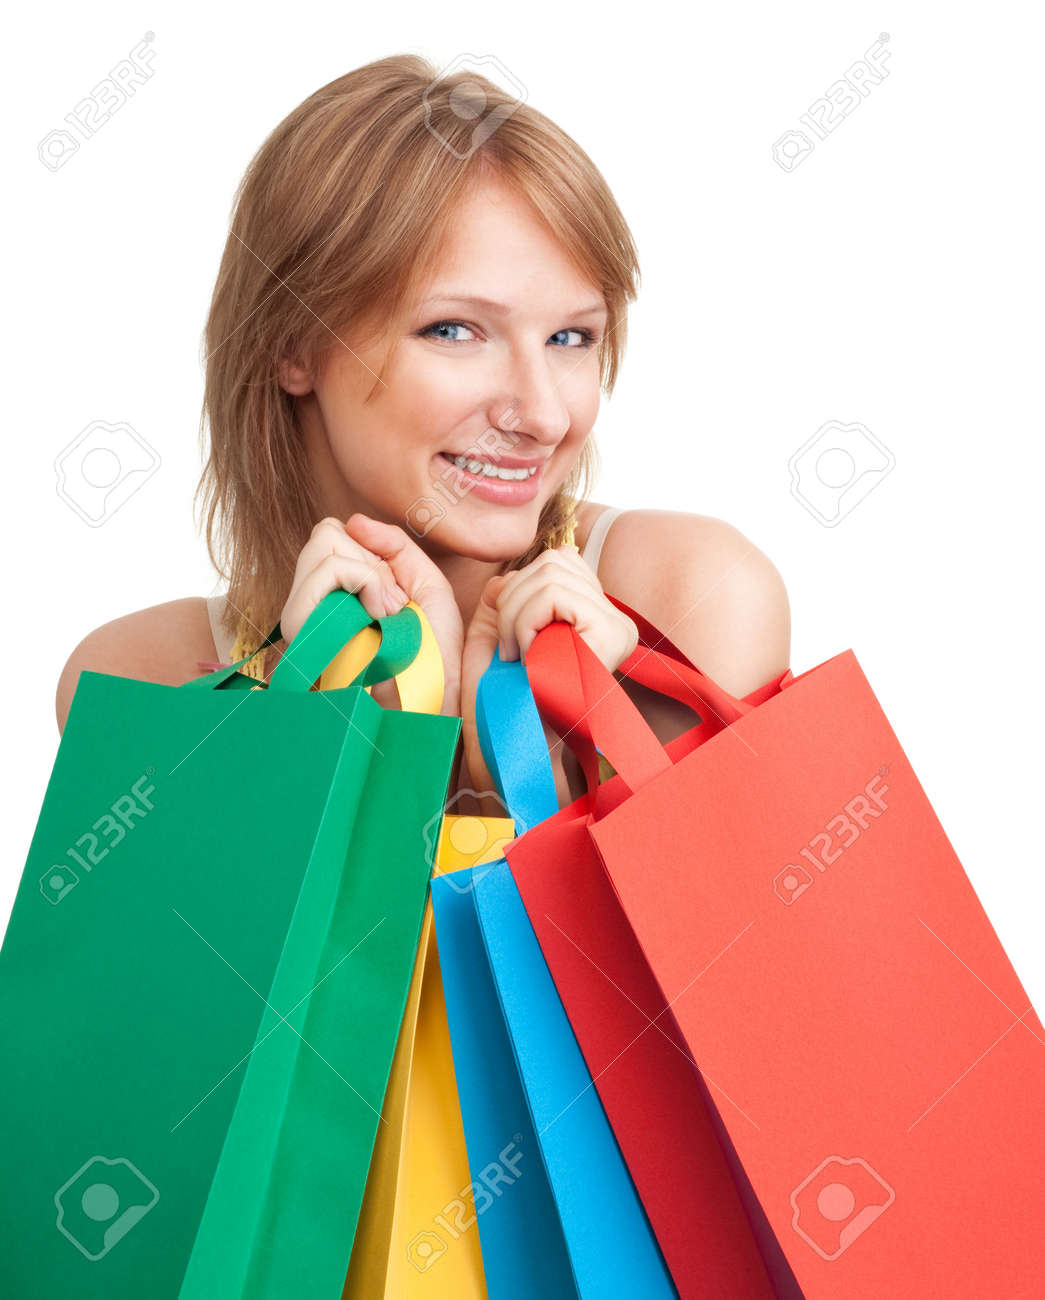 Happy young shopping bags smile looking at camera isolated on white Stock Photo - 7708687